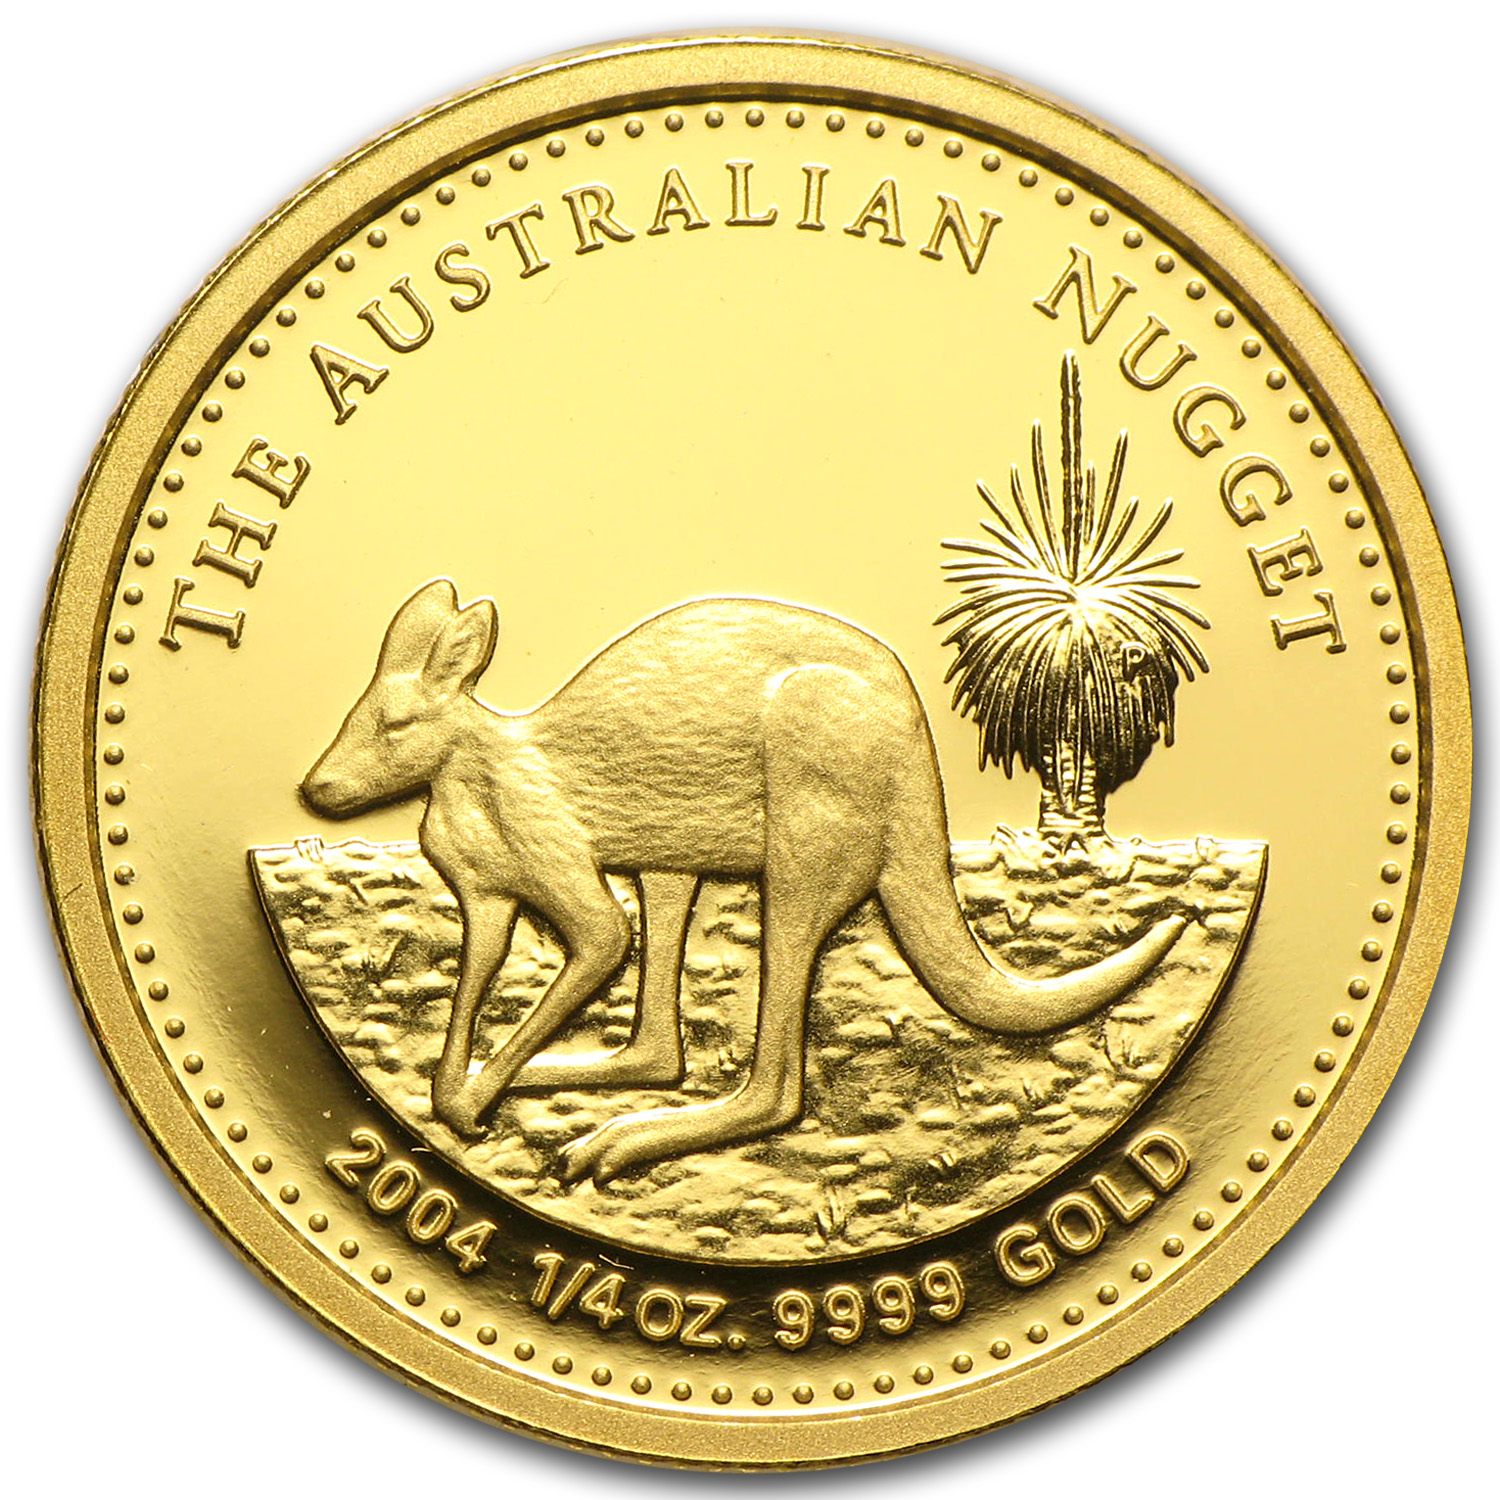 2004 Australia 1/4 oz Proof Gold Nugget